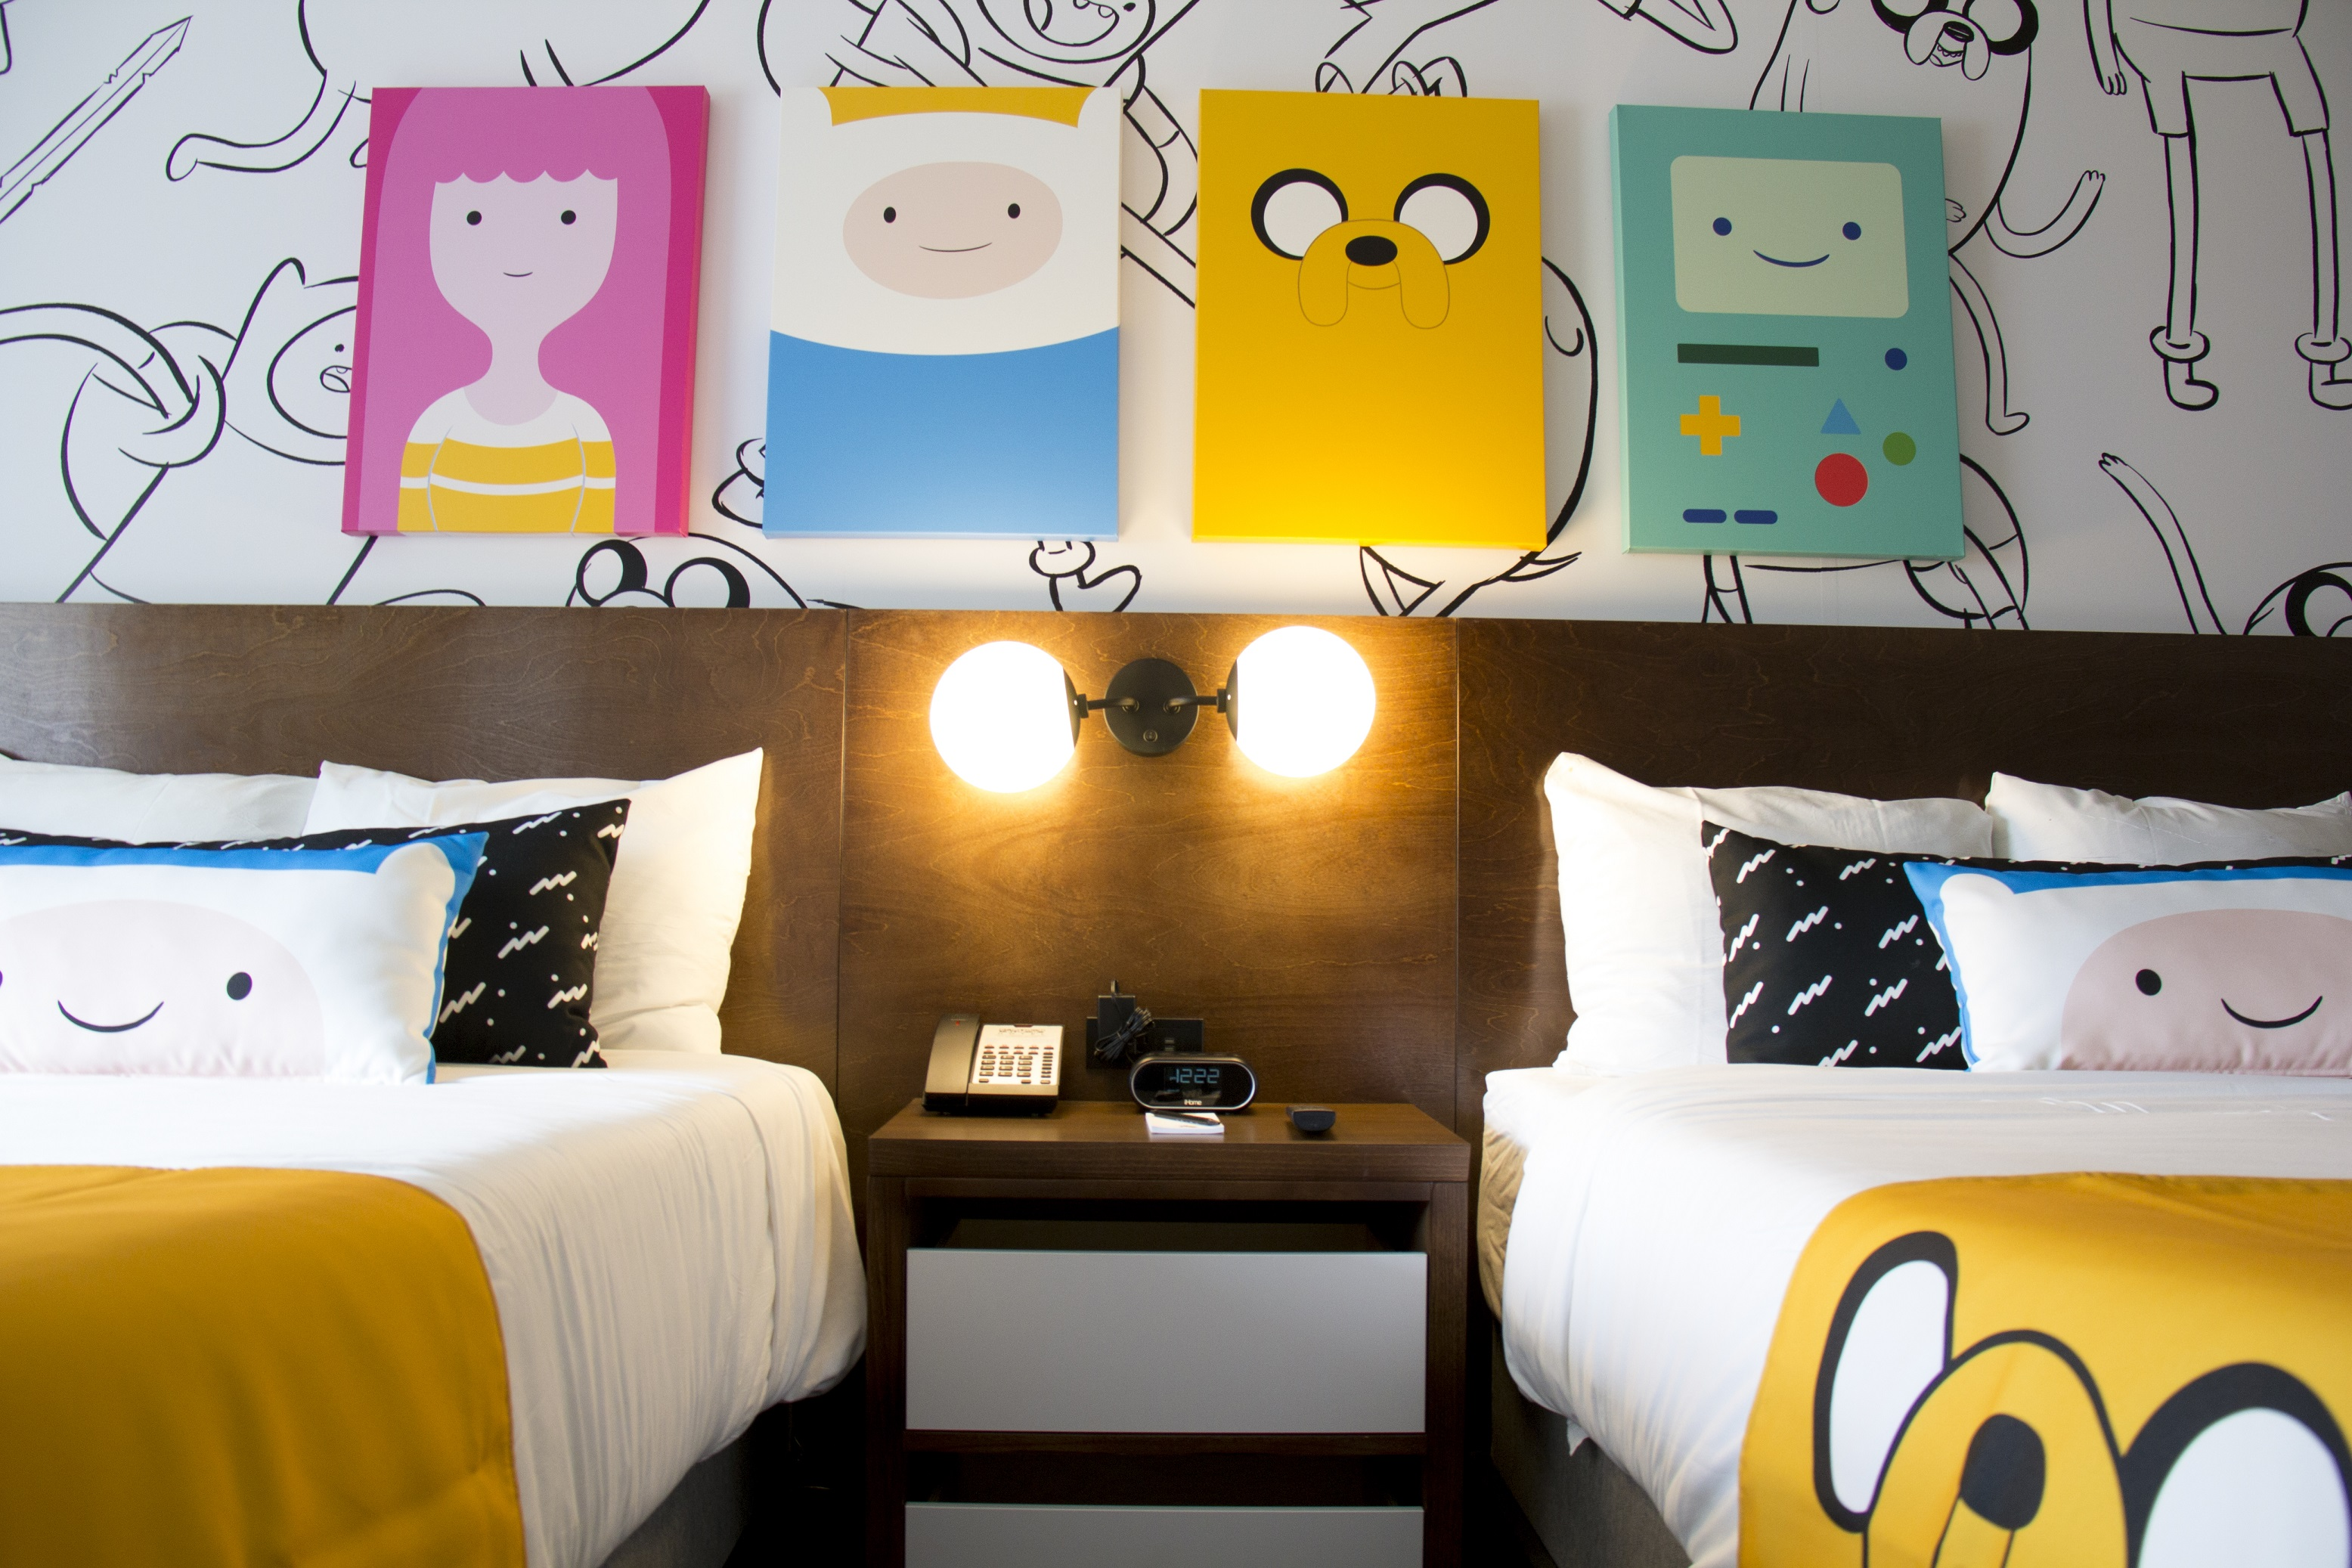 Adventure Time show themed canvases above two double beds